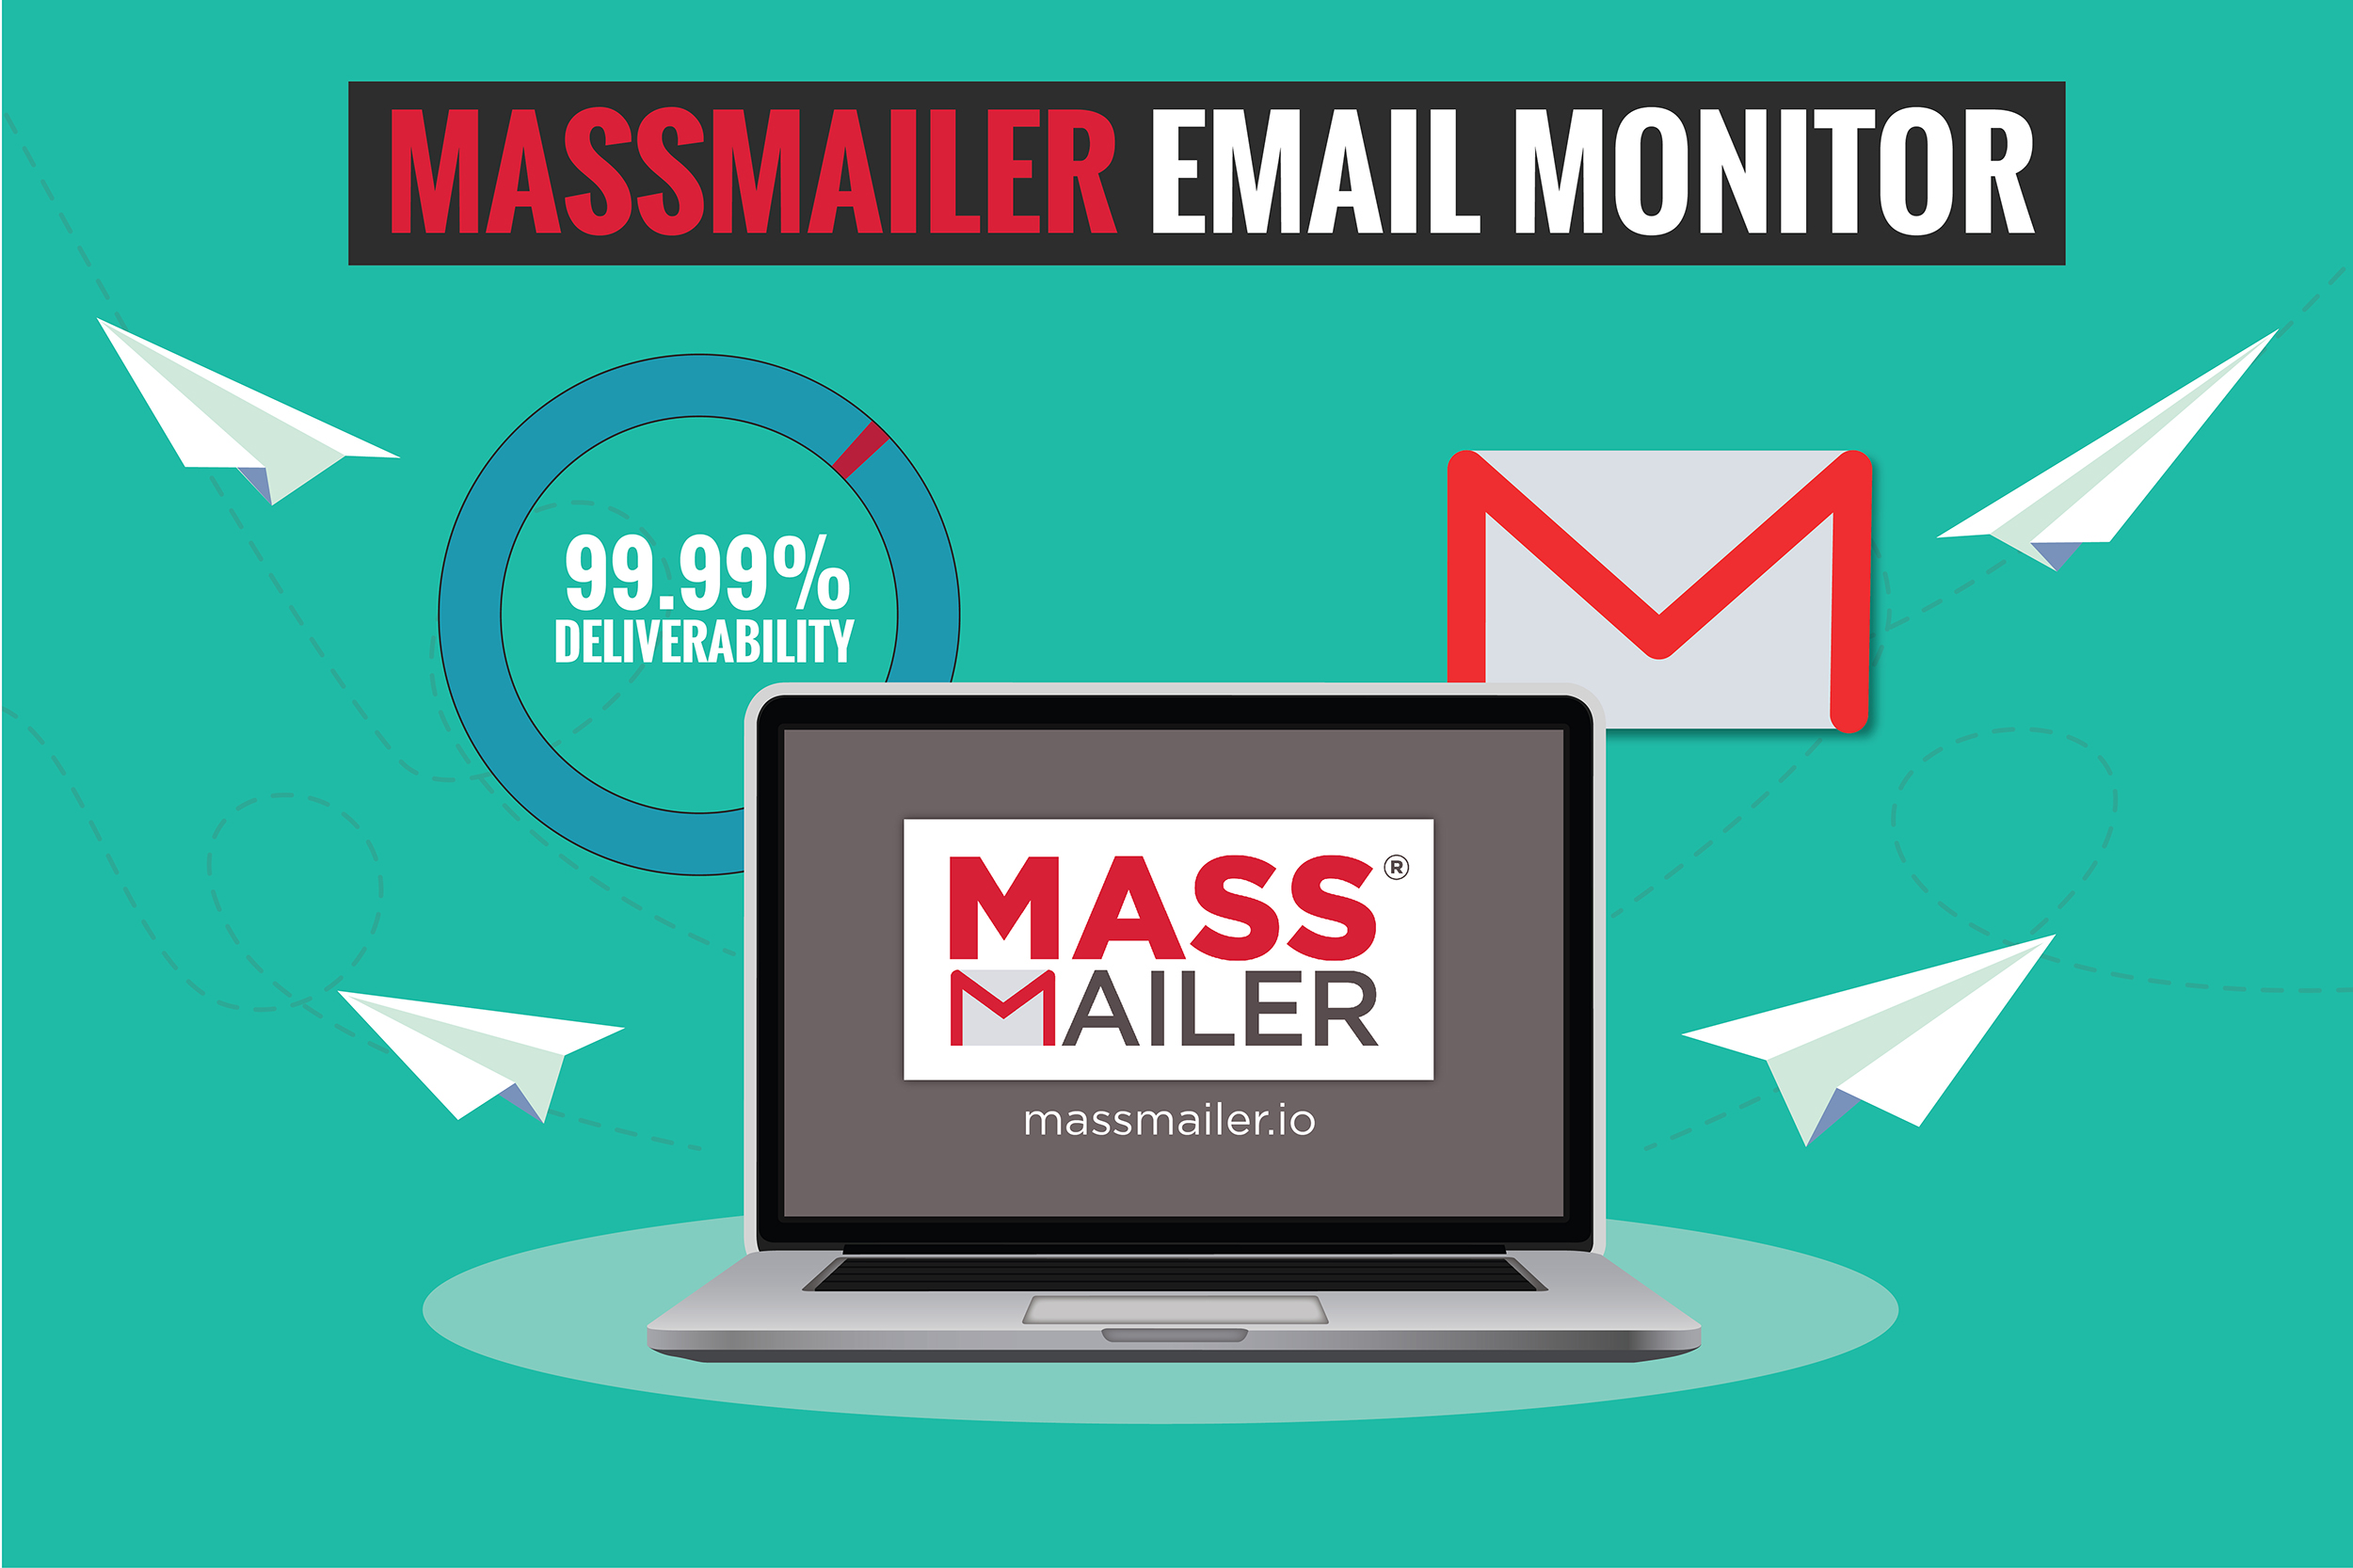 MassMailer Email Monitor for Email Reputation Management